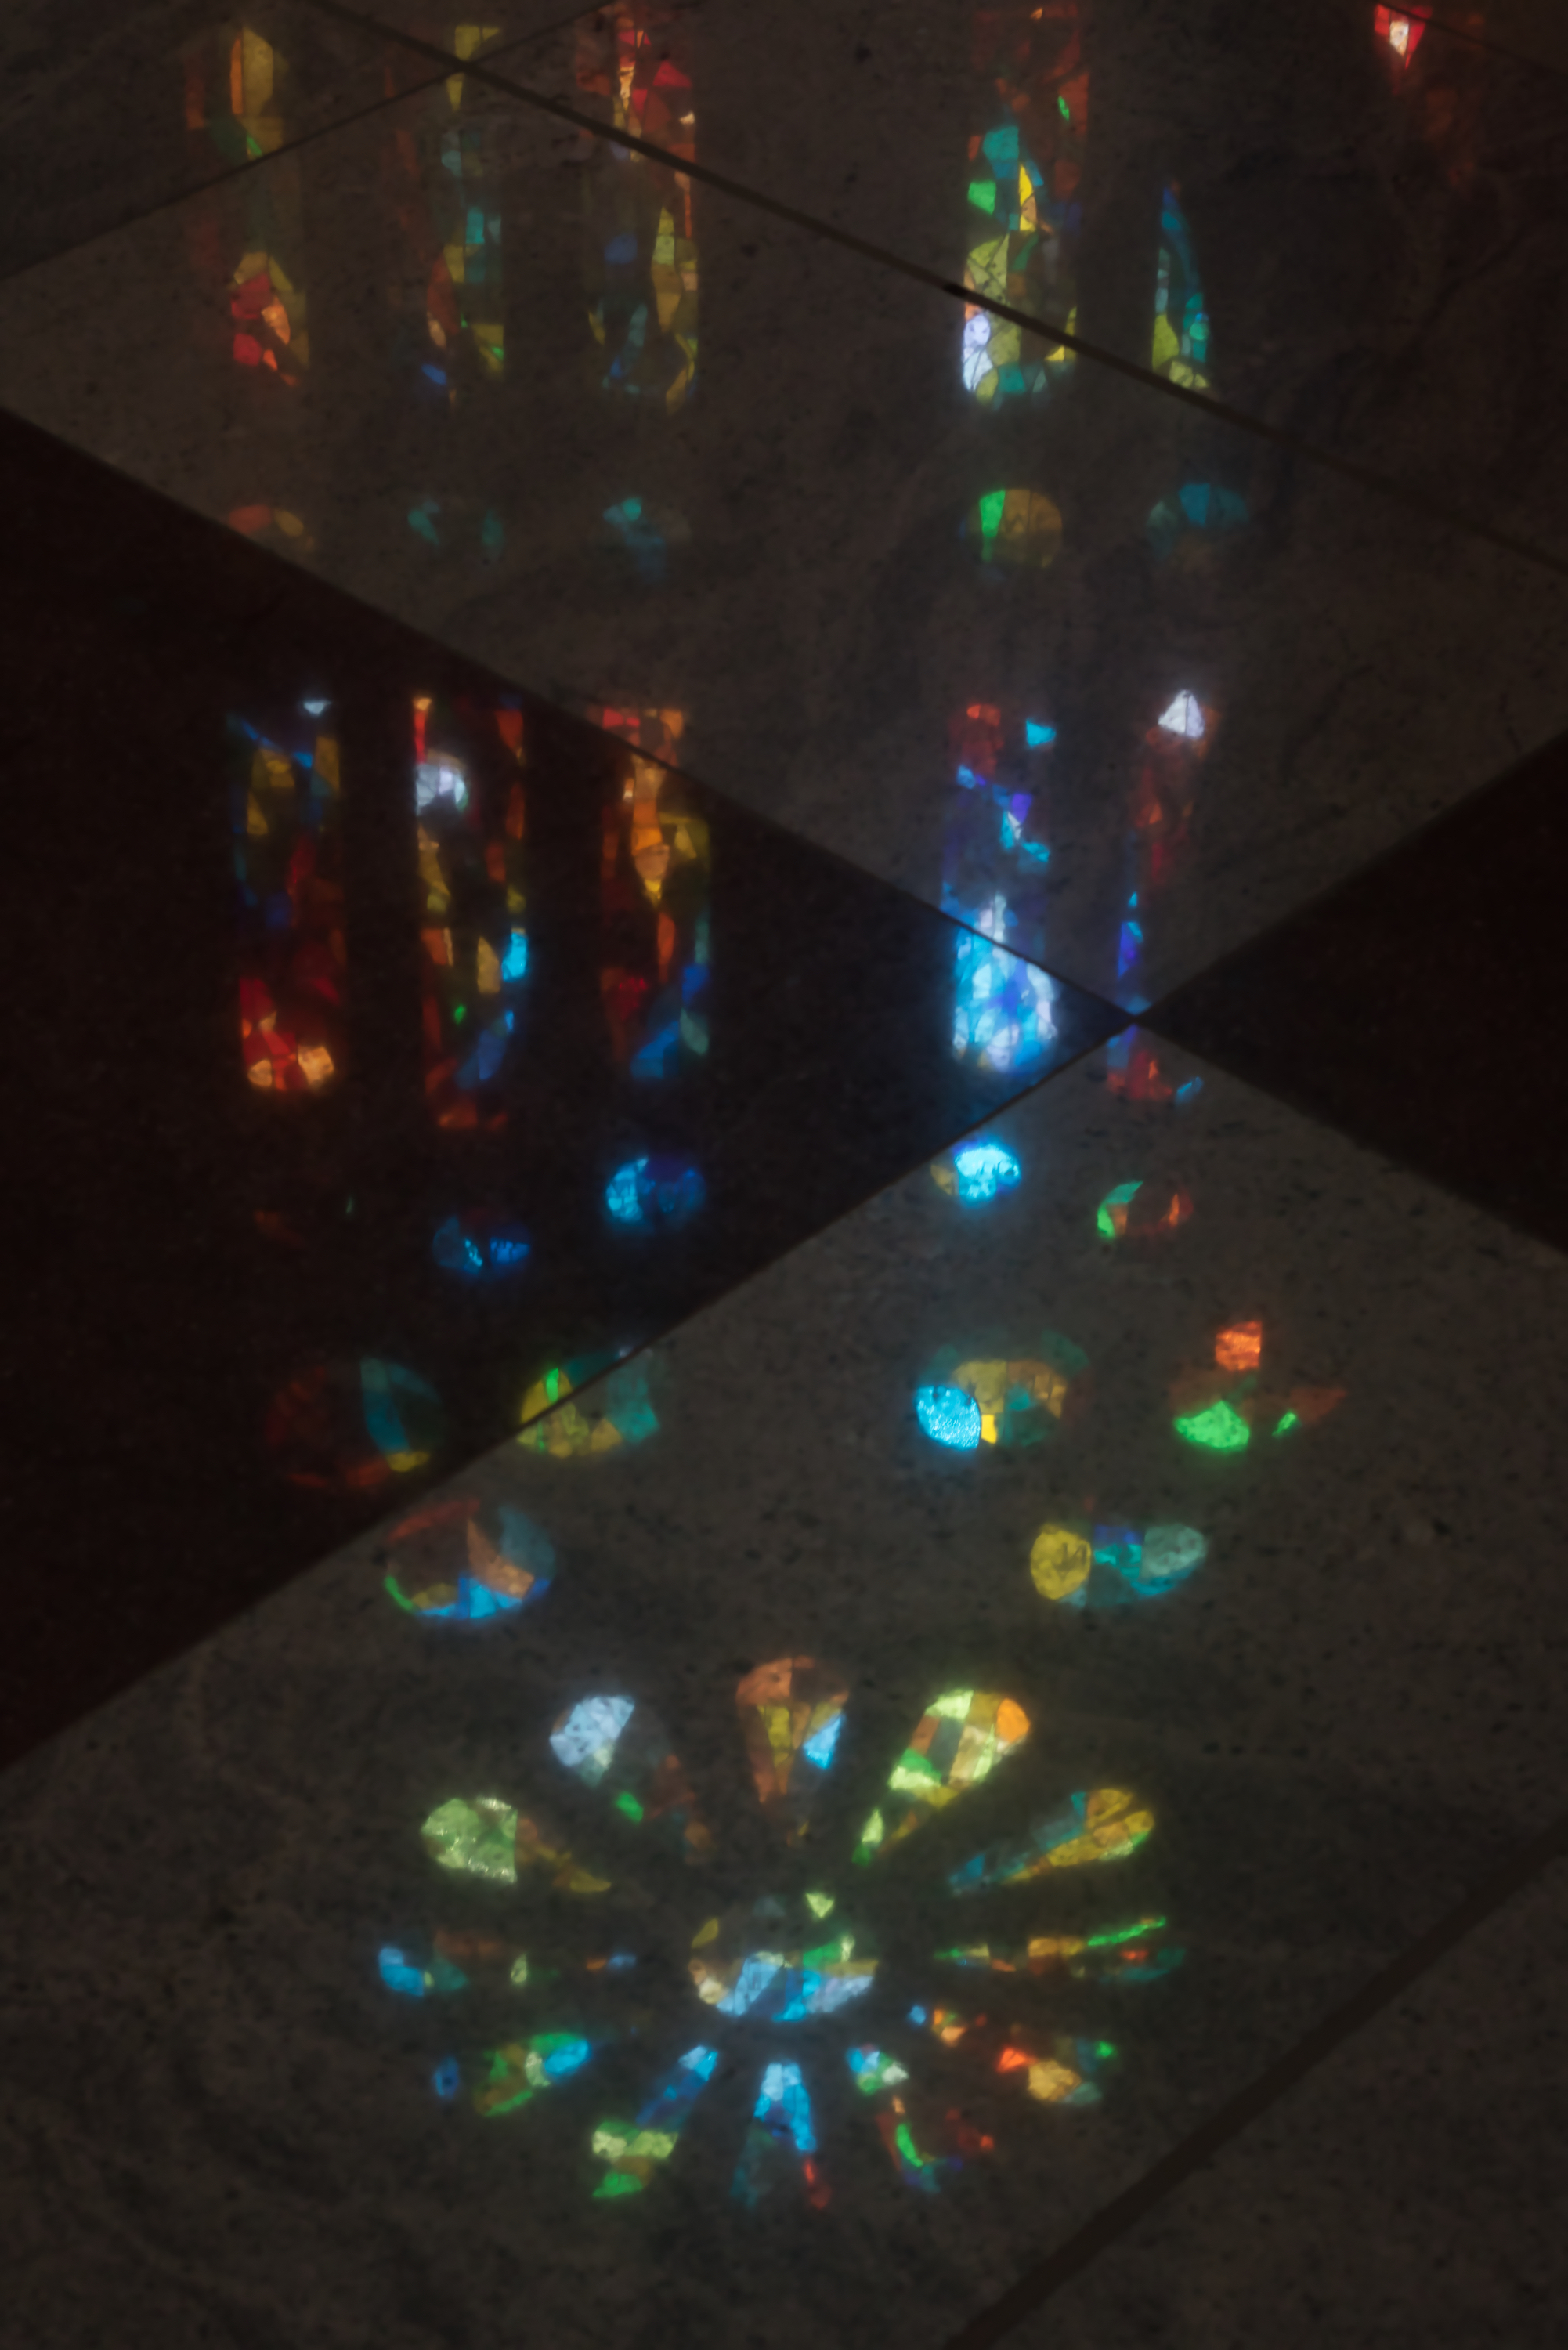 """In the words of Gaudí, """"Glory is light, light gives joy and joy is the happiness of the spirit."""" It truly brought me joy to take this photo of the stained-glass reflection.   Photo: Courtany Schick"""